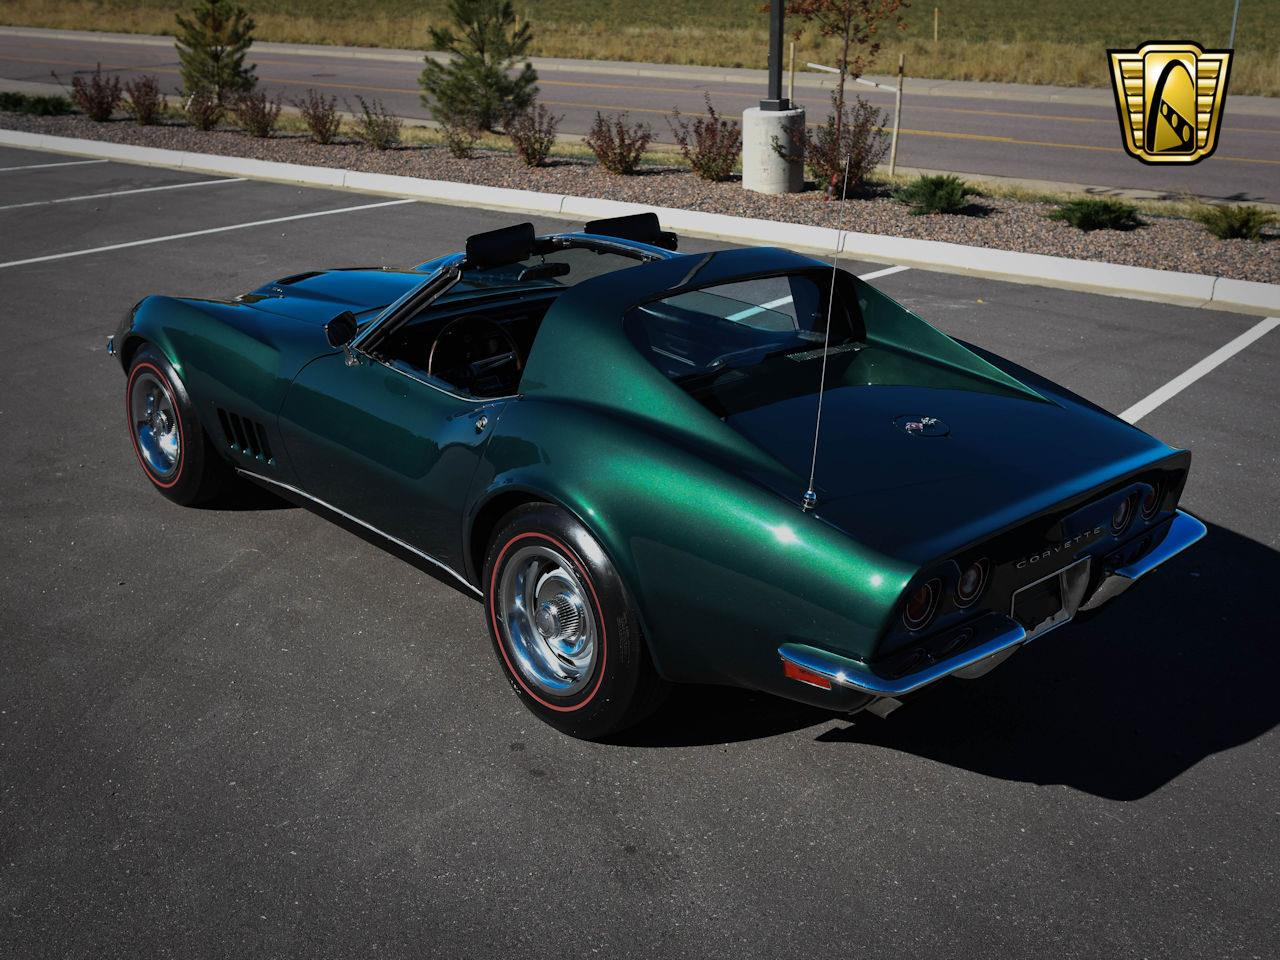 Large Picture of '68 Chevrolet Corvette located in O'Fallon Illinois - $27,995.00 Offered by Gateway Classic Cars - Denver - M9KE